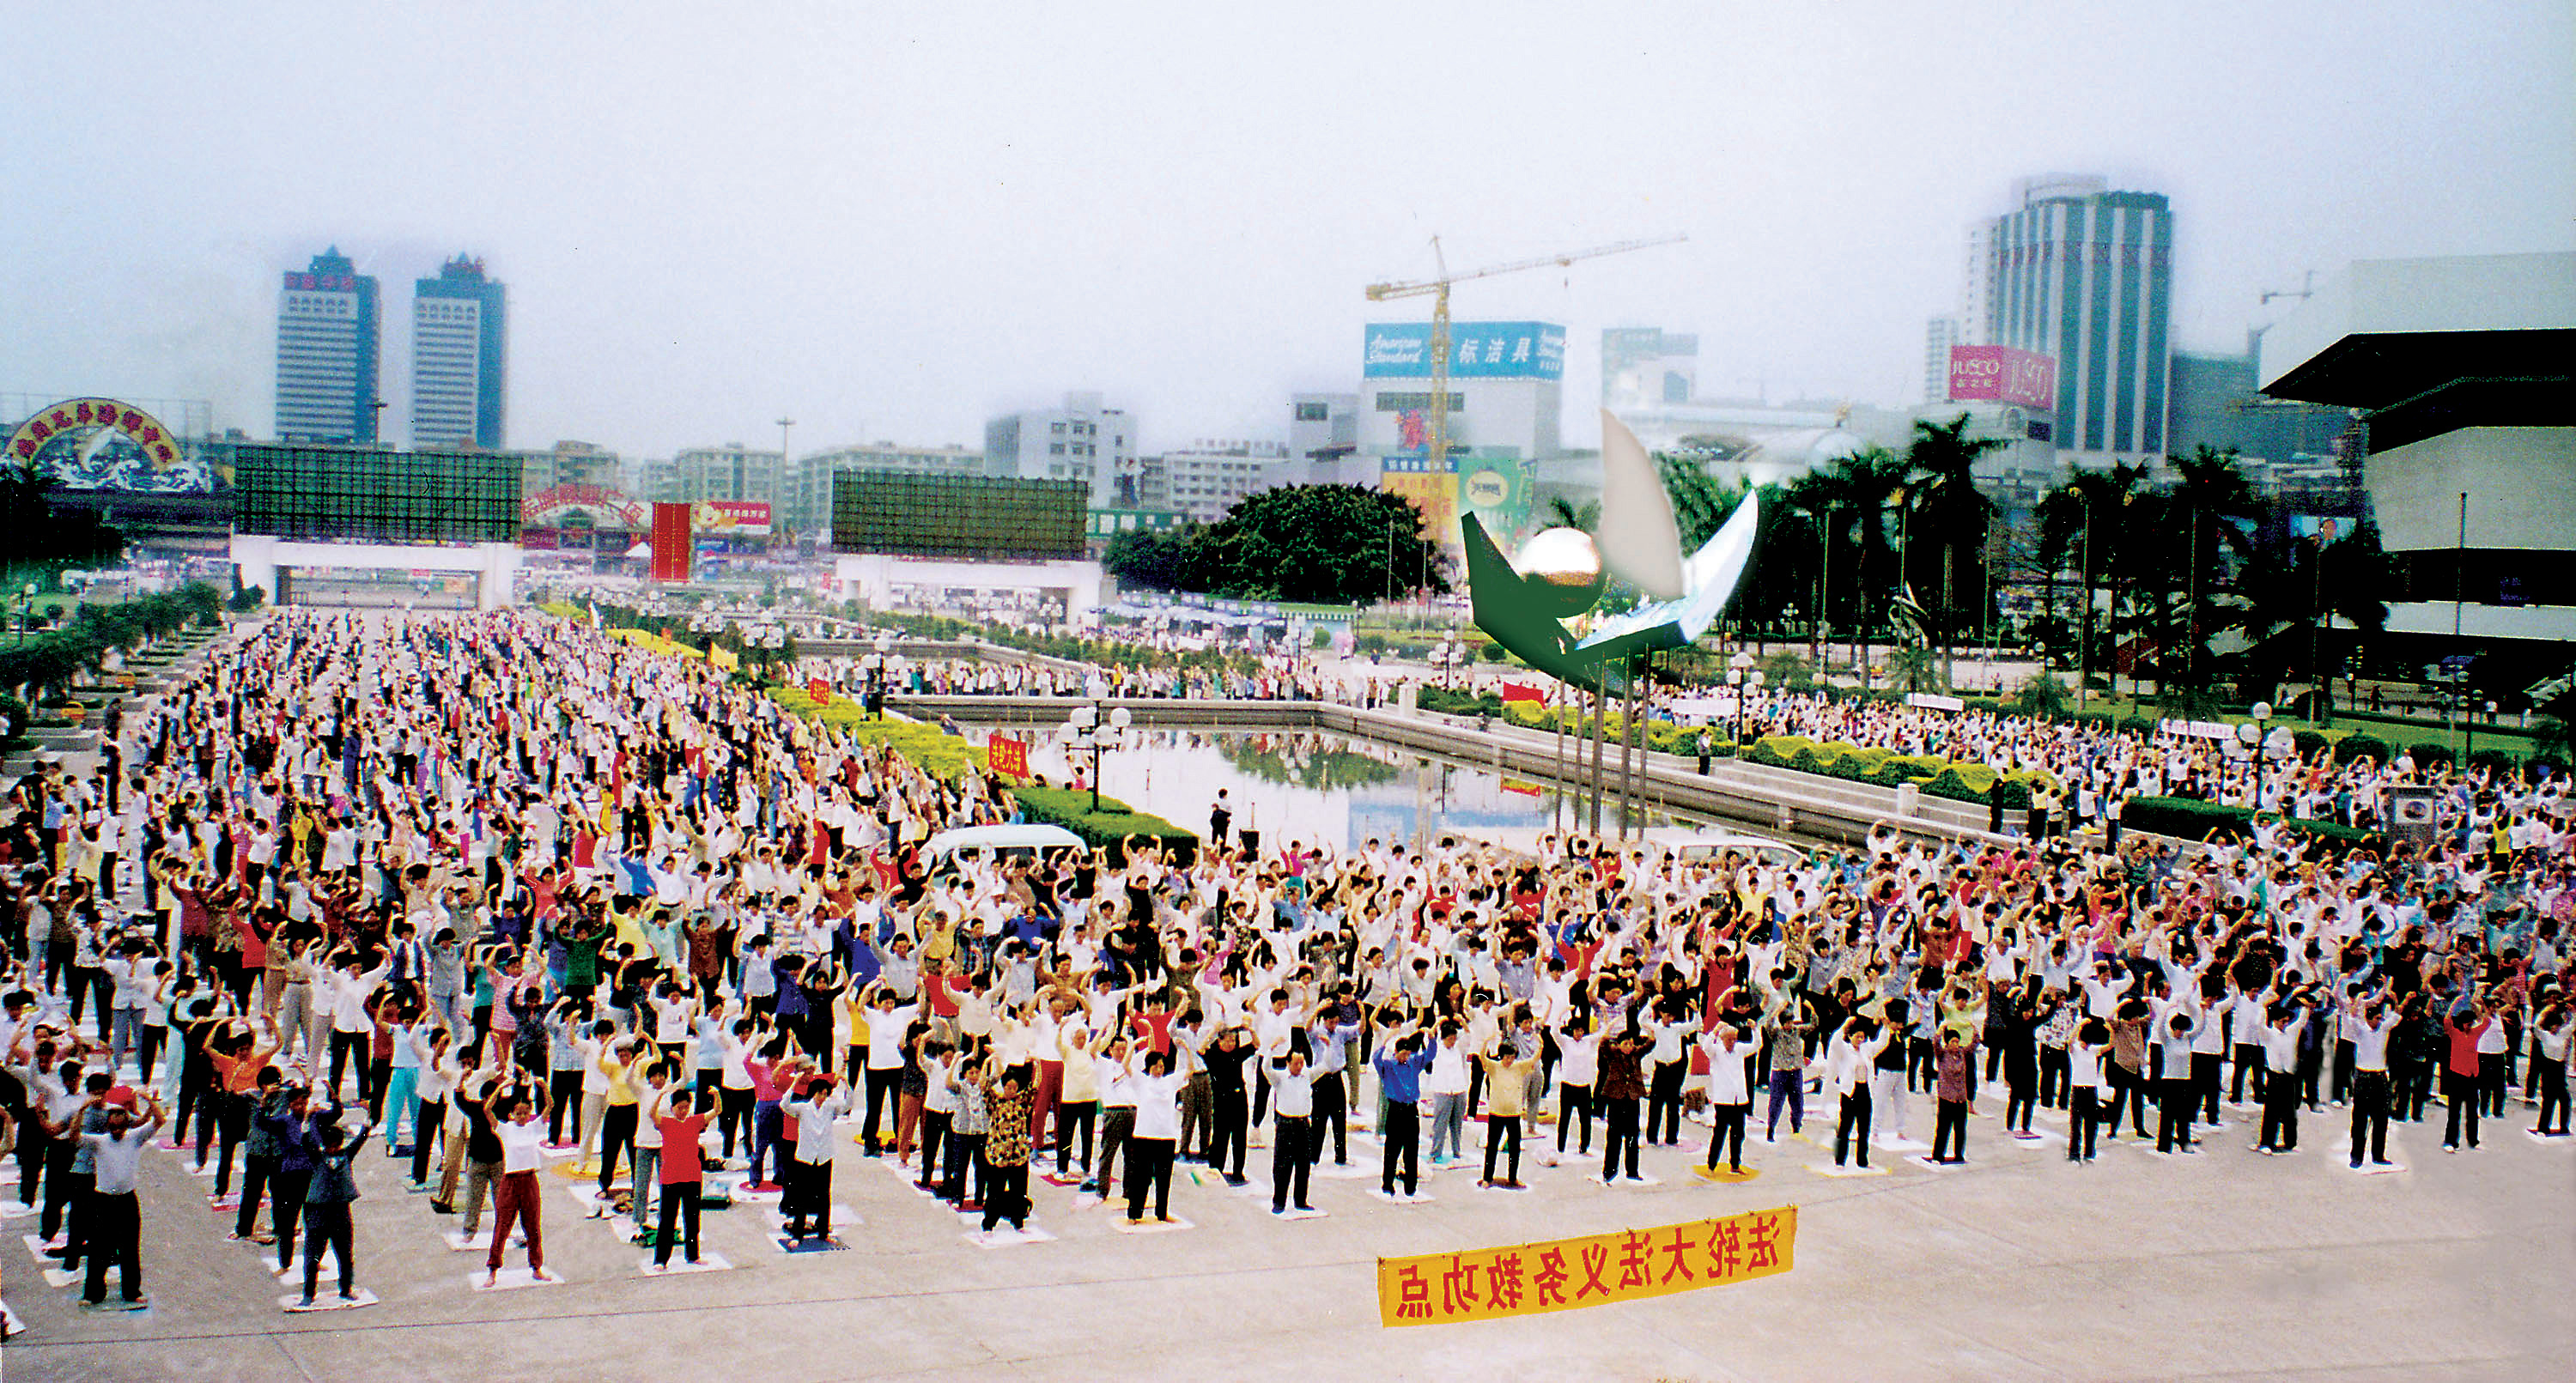 By the mid-1990s, weekend Falun Gong exercise sites with thousands of participants, like this one in Guangzhou, were a common site throughout China.